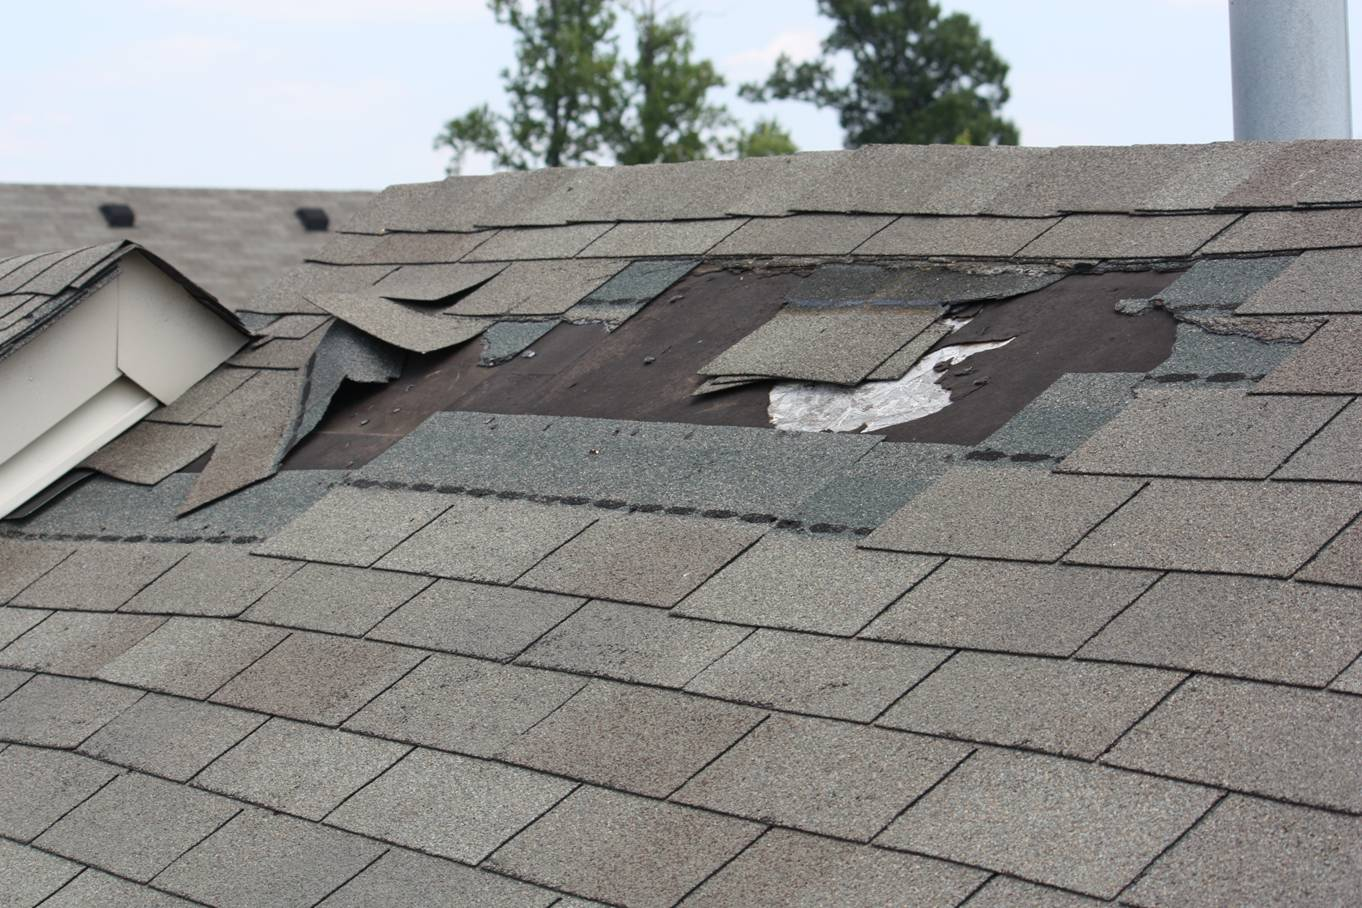 roof-repair-long-island1.jpg